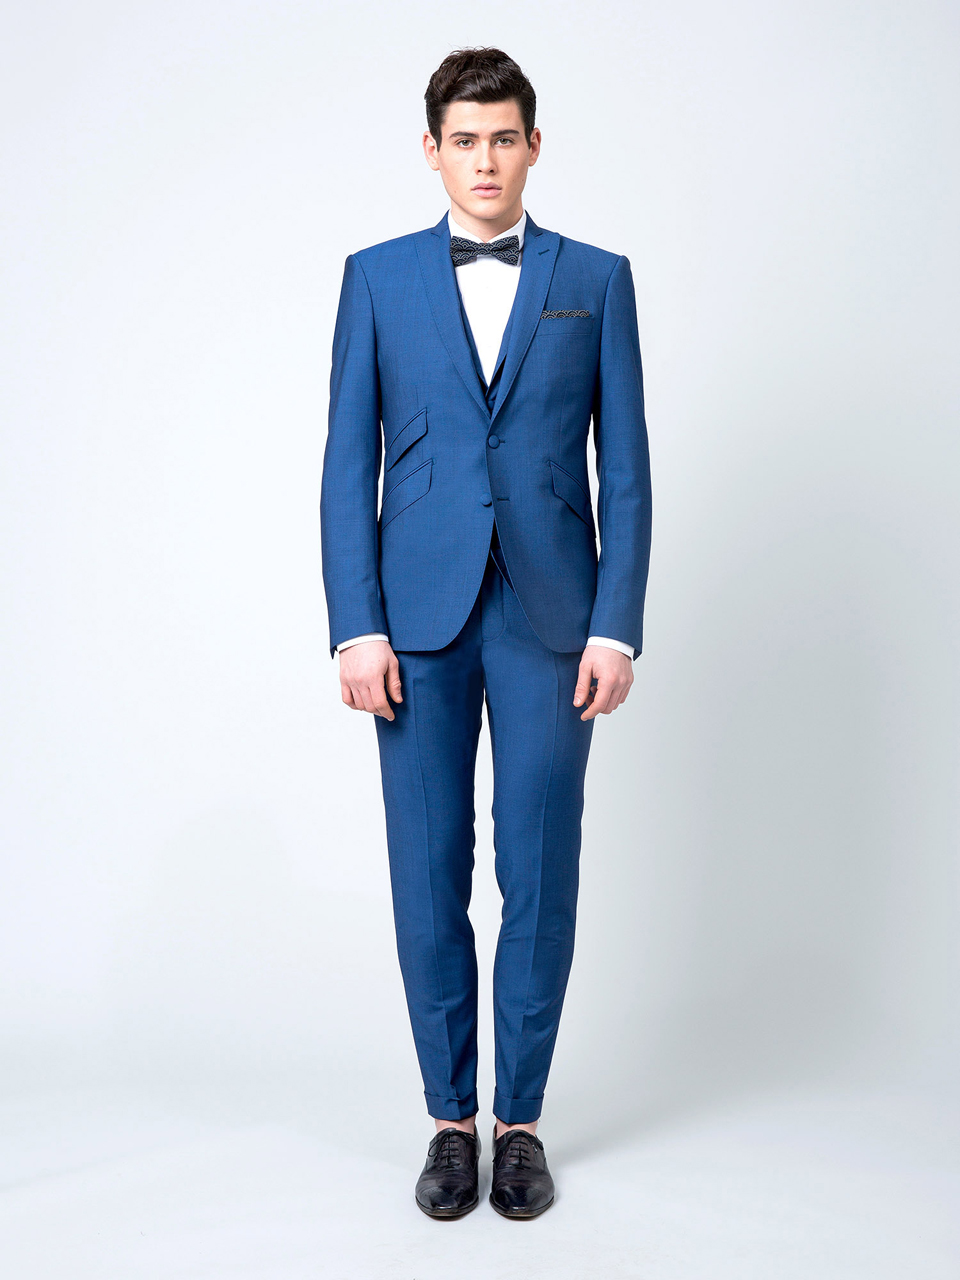 Inspiration costume homme